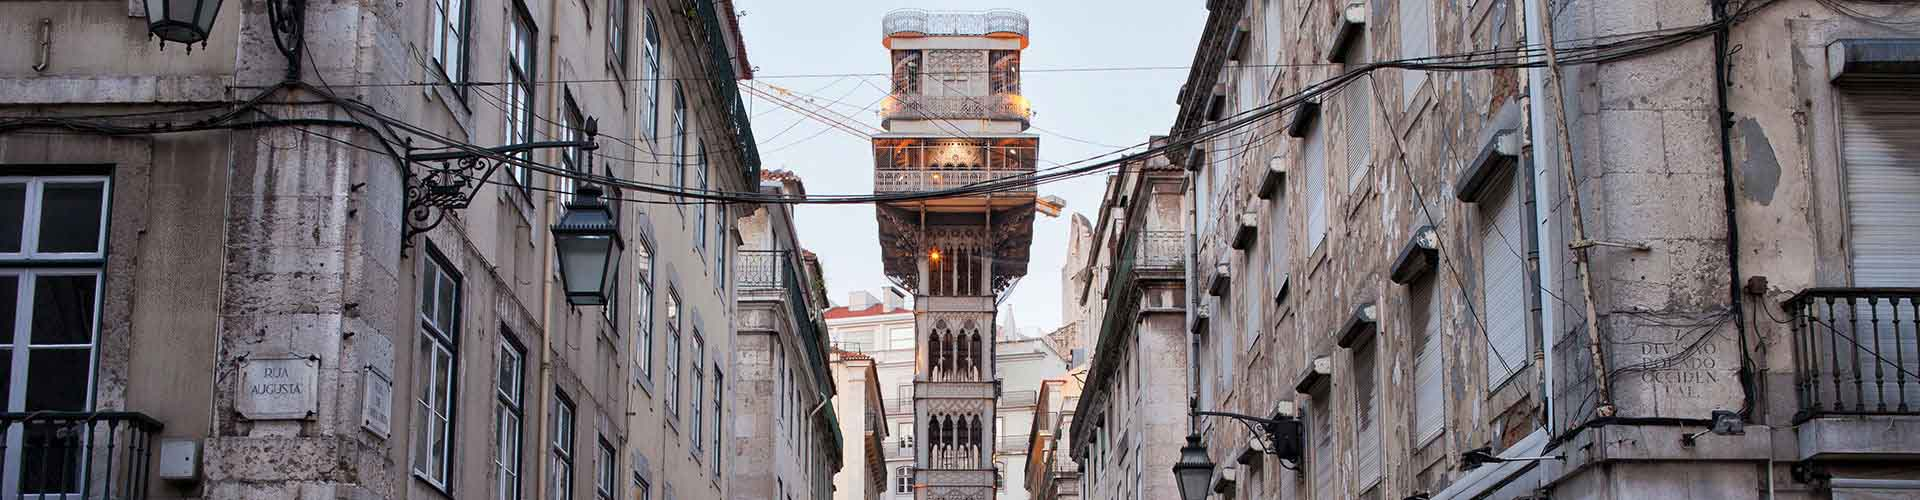 Lisbon – Hostels close to Santa Justa Lift. Maps for Lisbon, Photos and Reviews for each hostel in Lisbon.